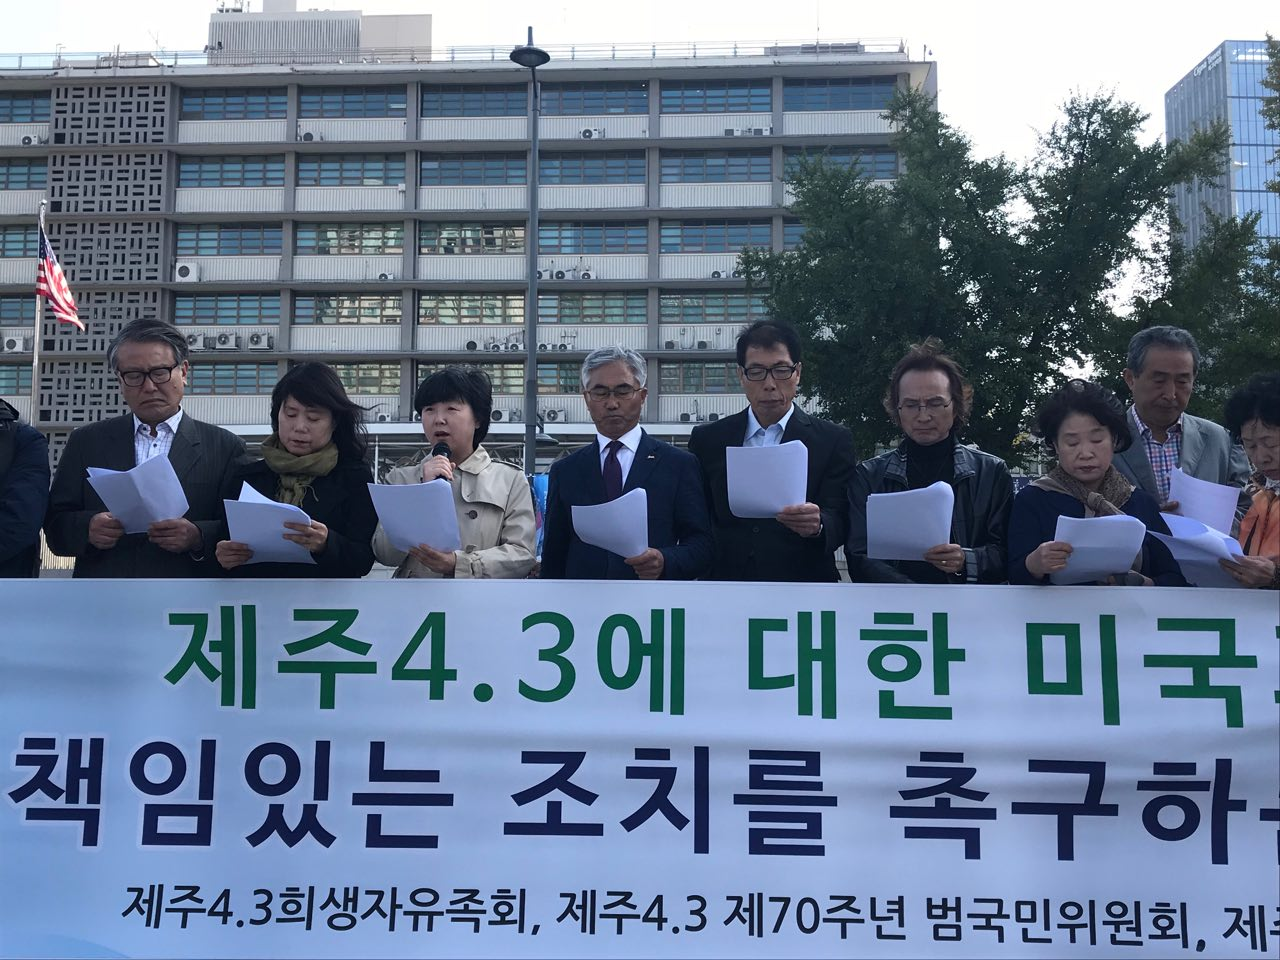 April 3 massacre civic groups embarked on a 100,000-signature campaign, demanding an apology from the U.S.